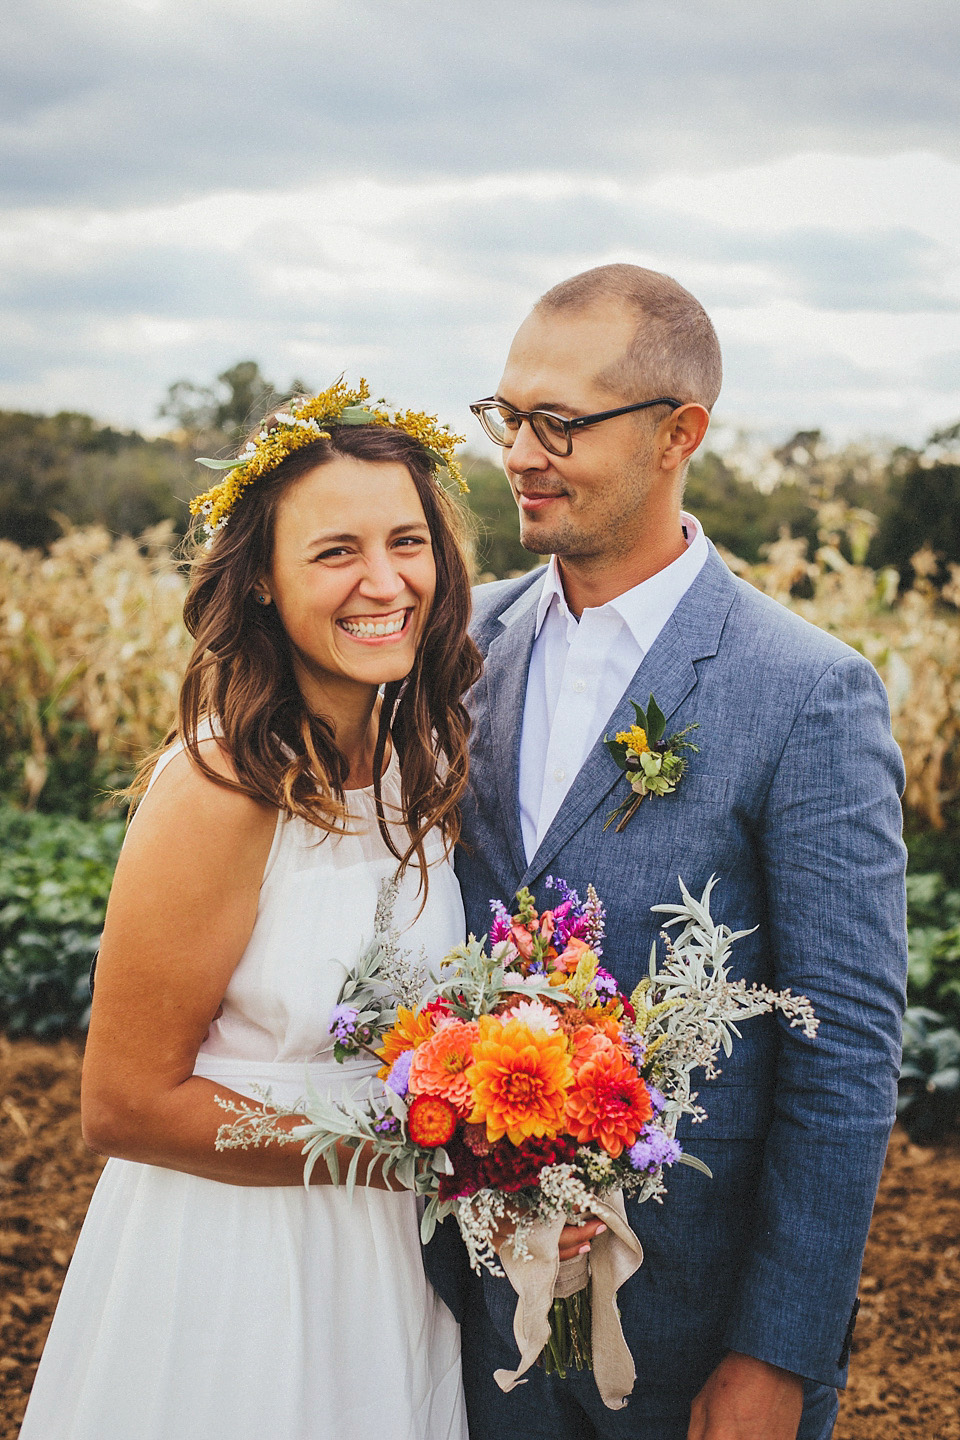 A Madewell Dress for a Homespun and Rustic Wedding on the Farm